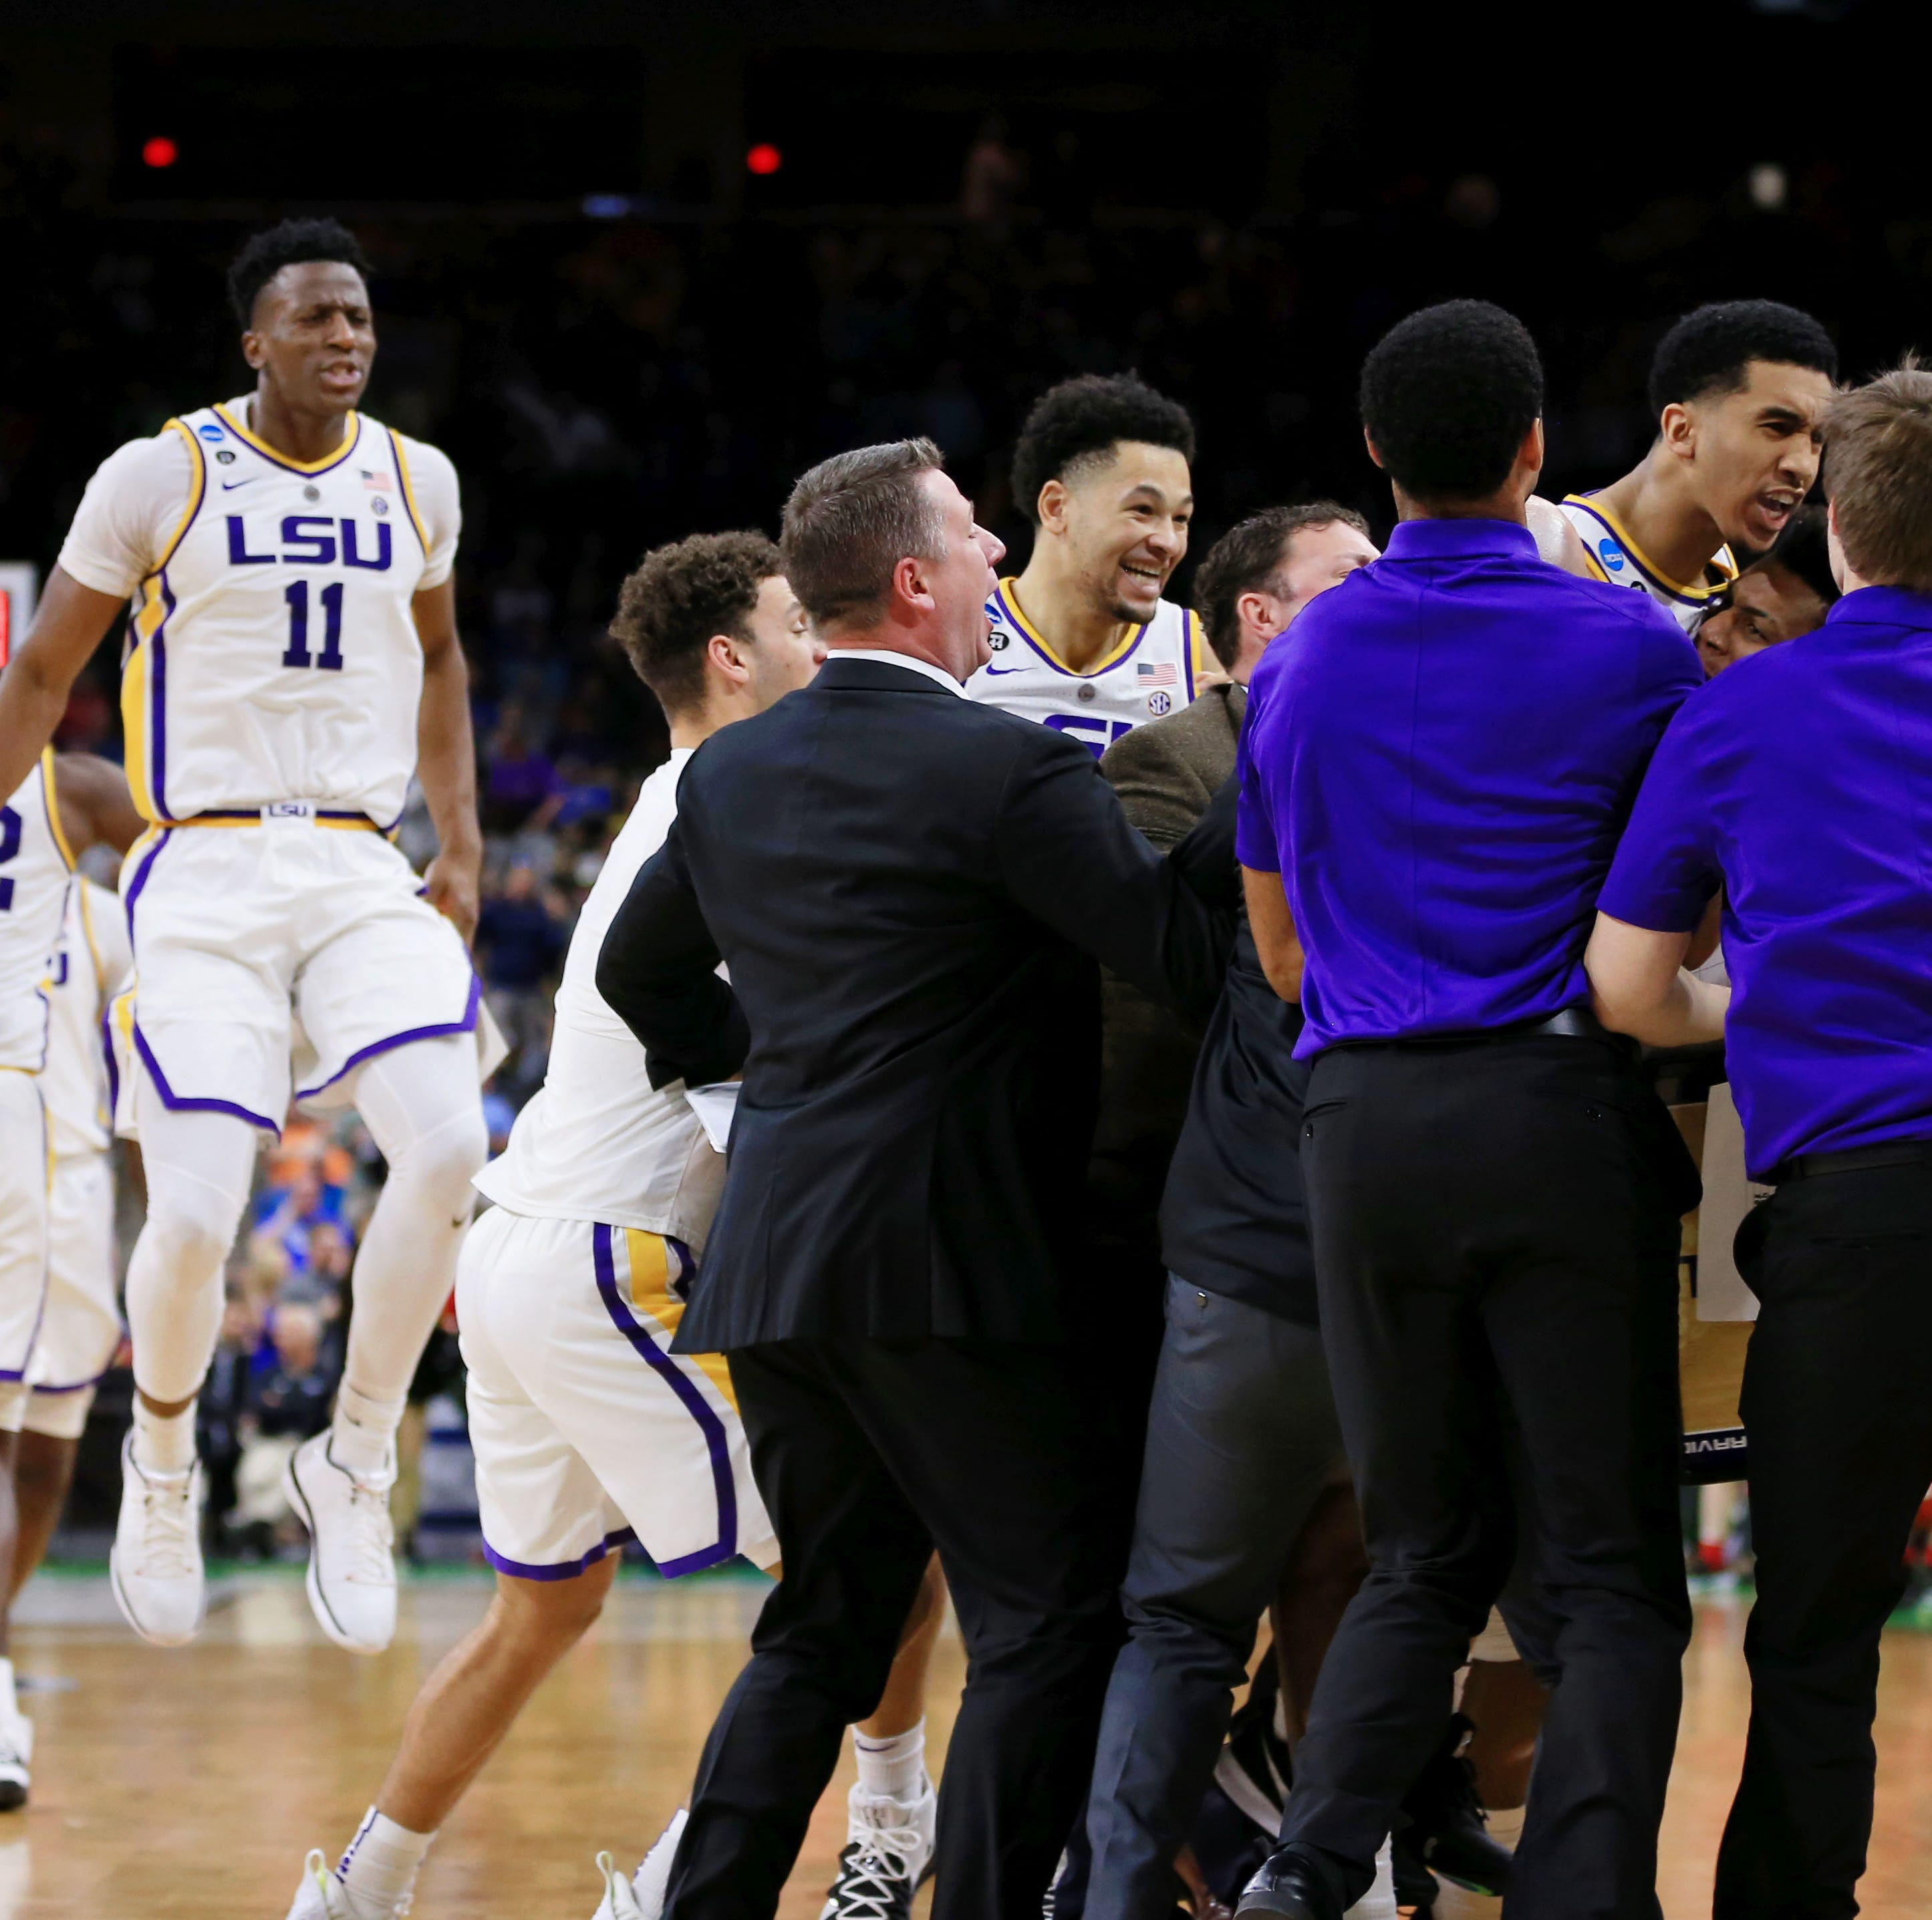 LSU pulling out games late not new; Tigers vs. Michigan St. at 6:09 p.m. Friday on CBS